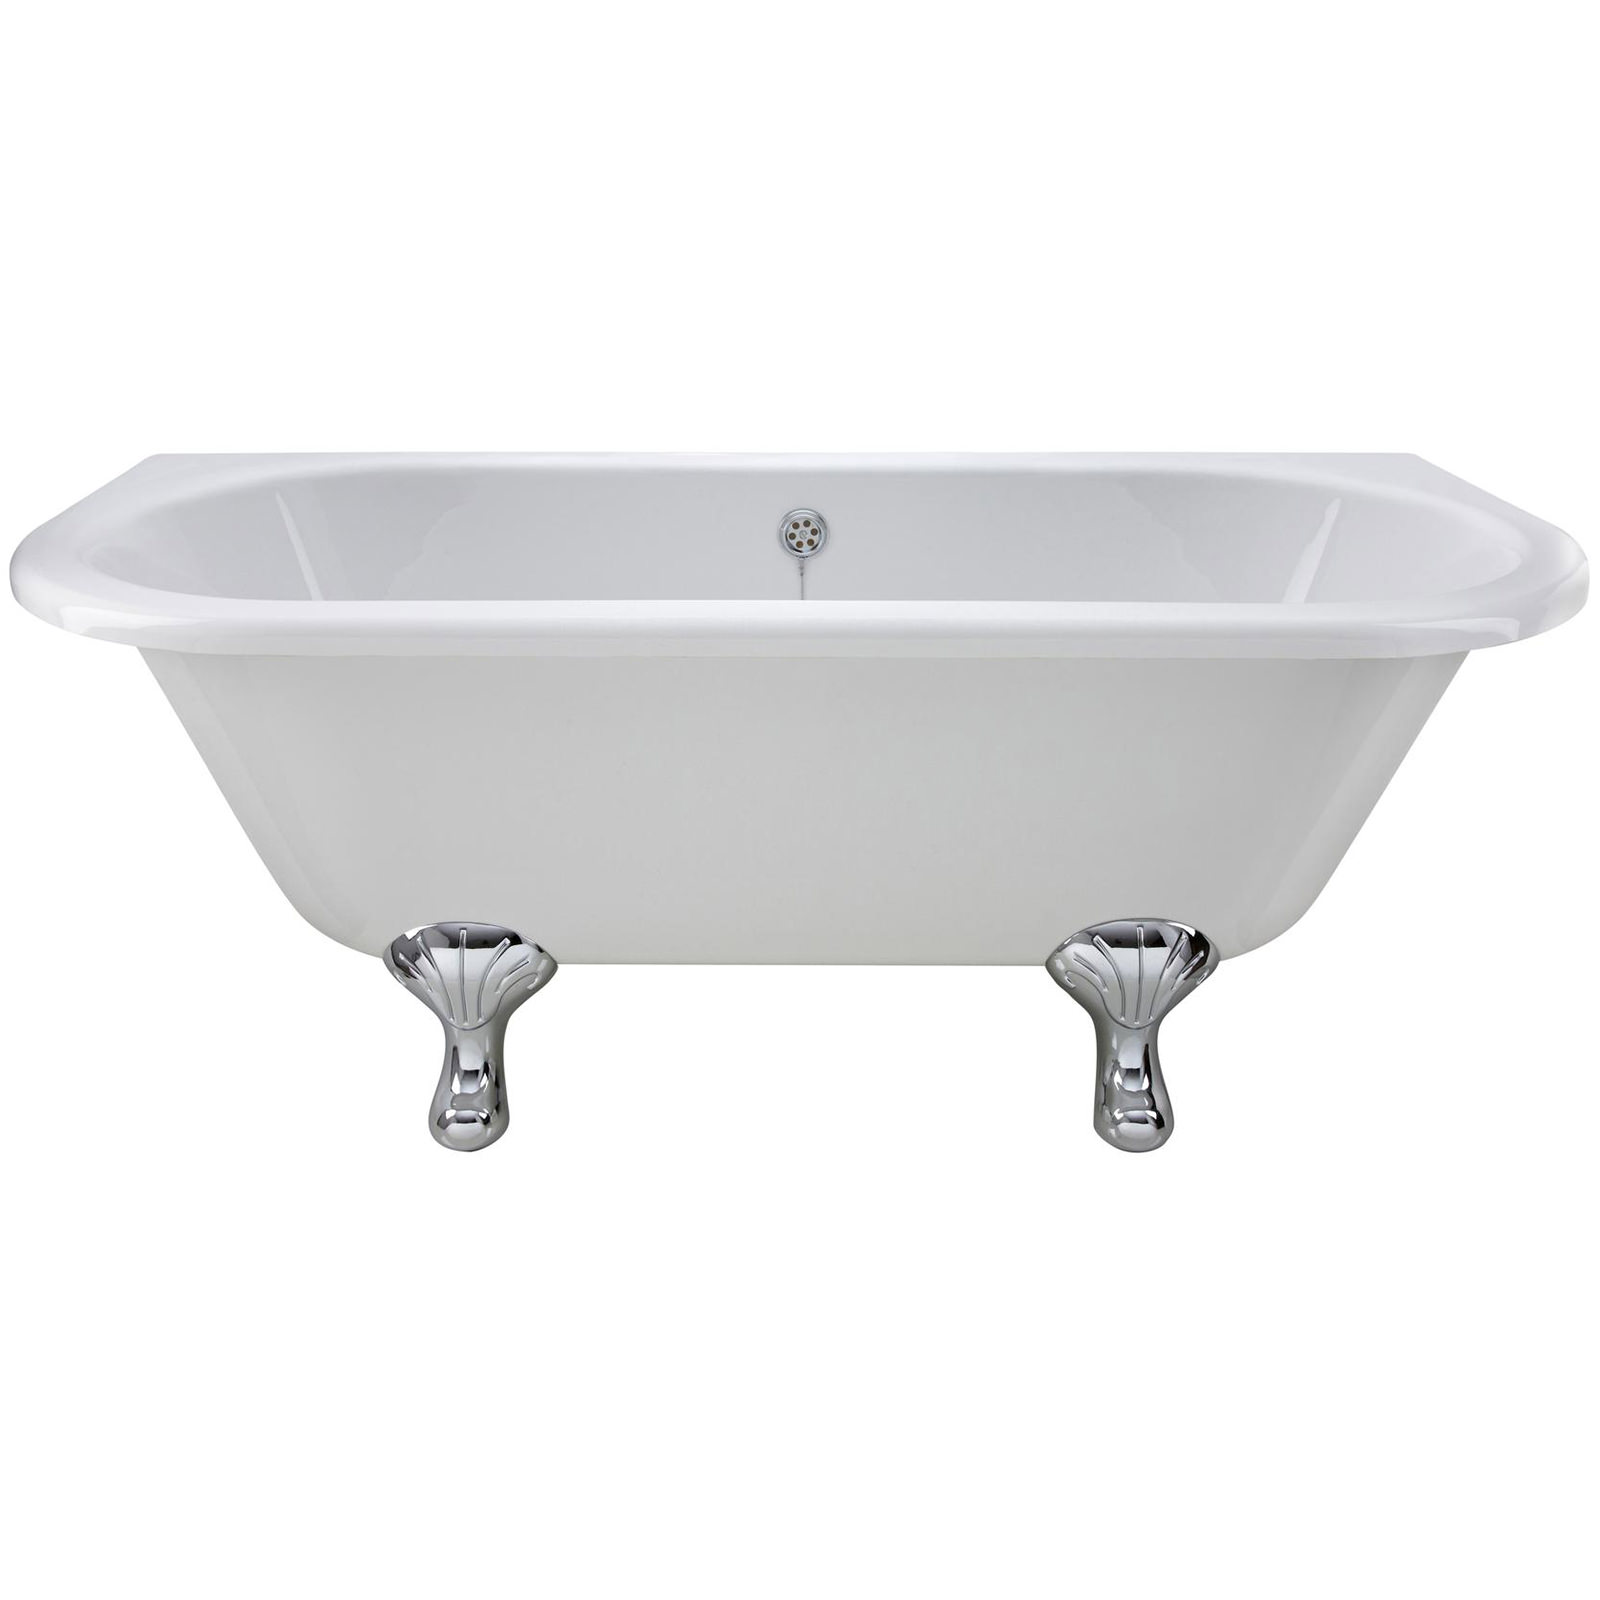 Small Back To Wall Bath Part - 32: Lauren 1700 X 745mm Back-To-Wall Freestanding Acrylic Bath With Corbel Legs